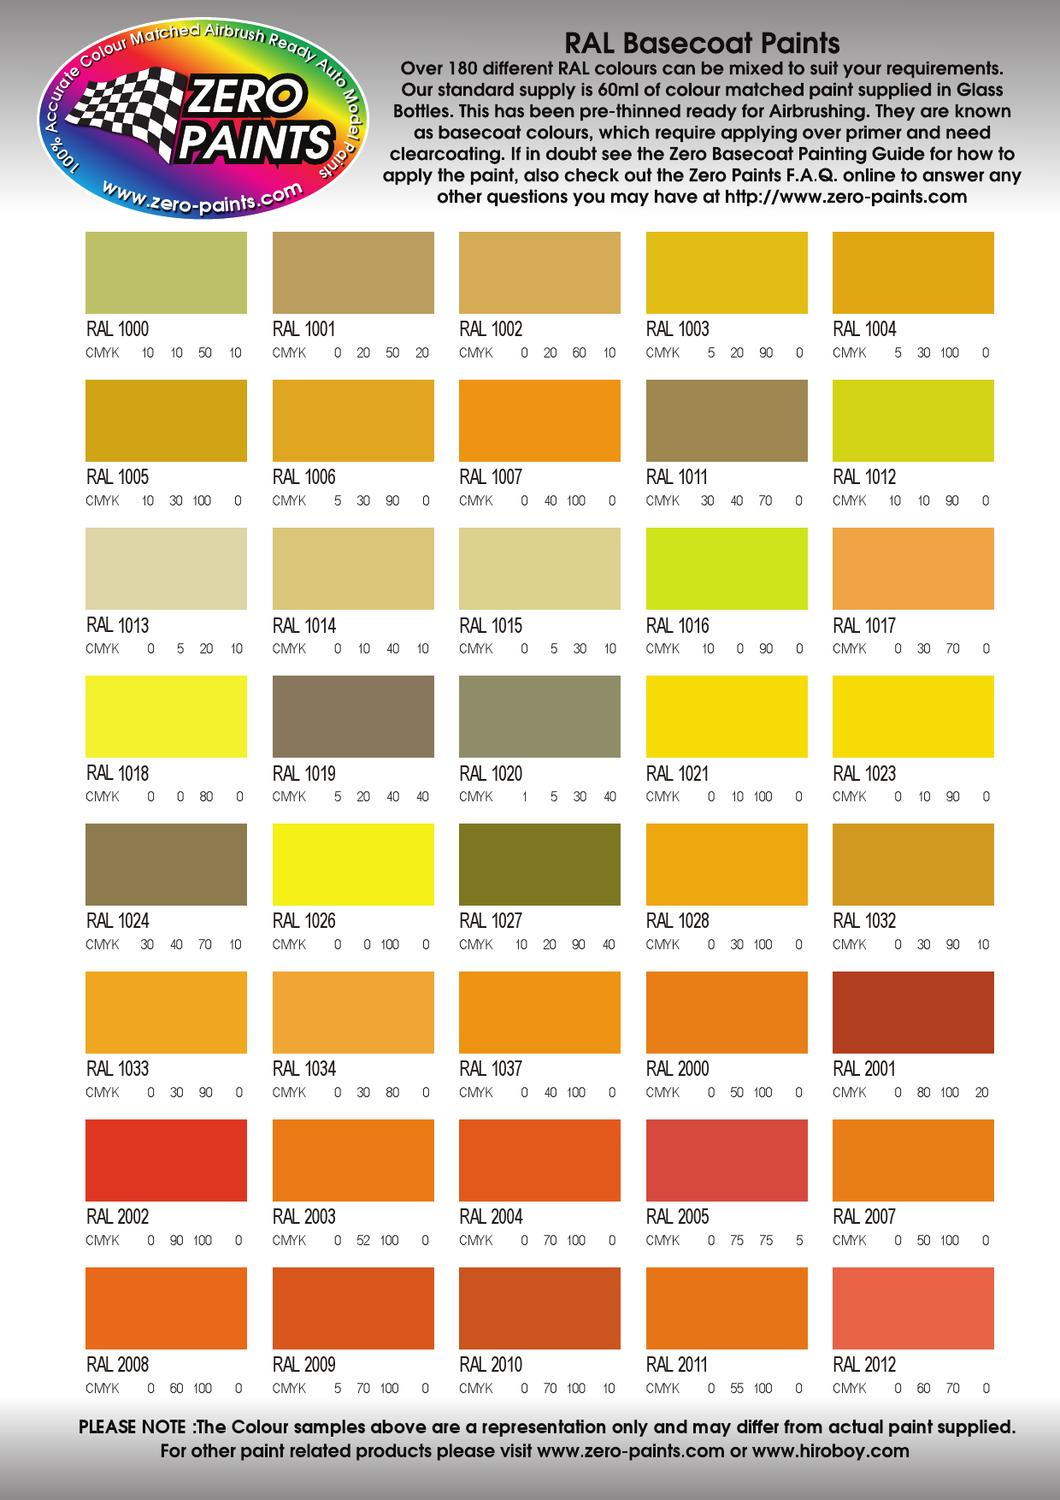 Pantone to rgb conversion chart pdf